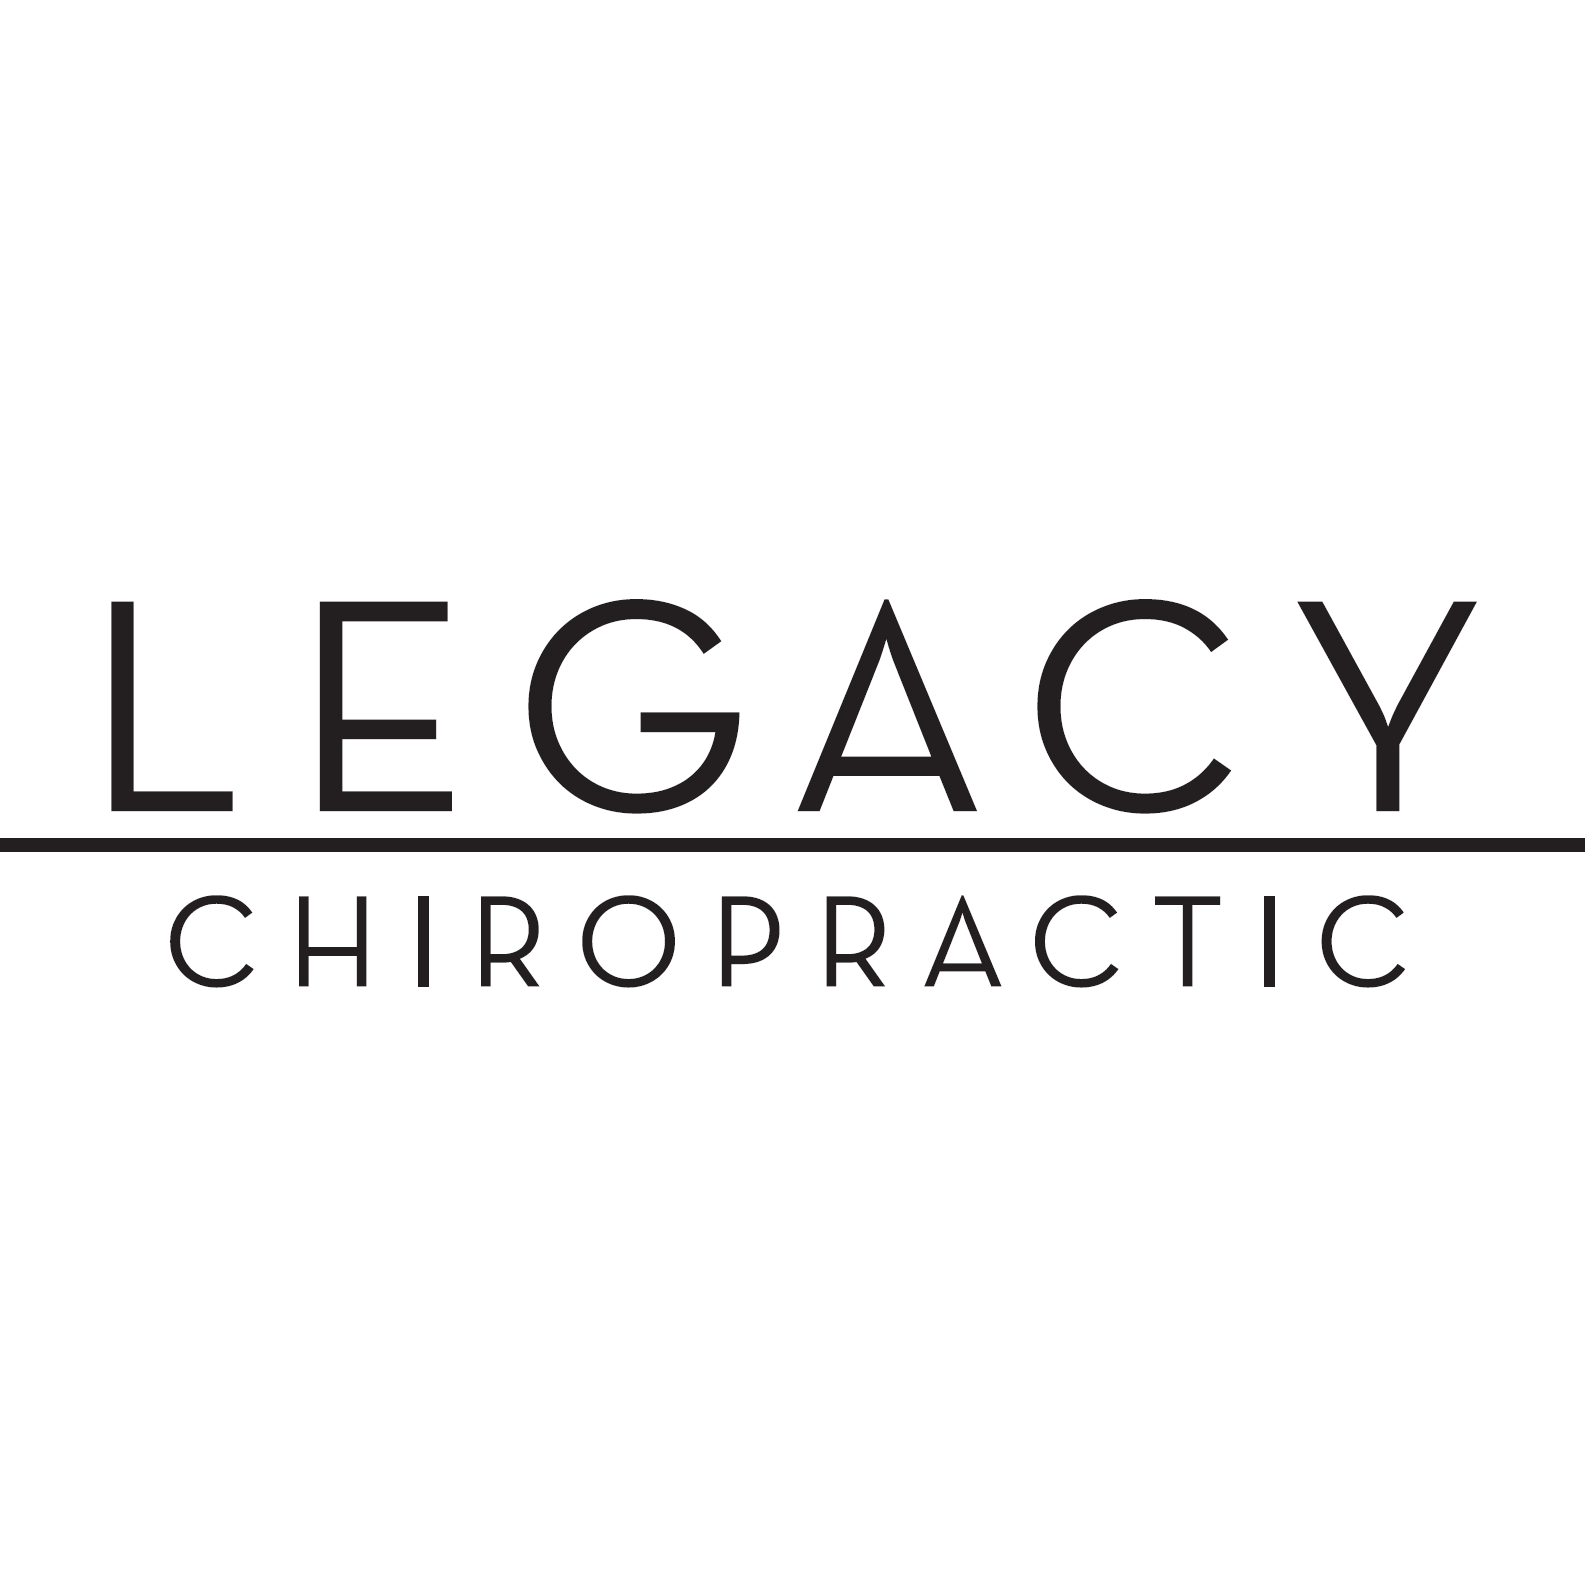 chiropractors business in oklahoma city ok united states